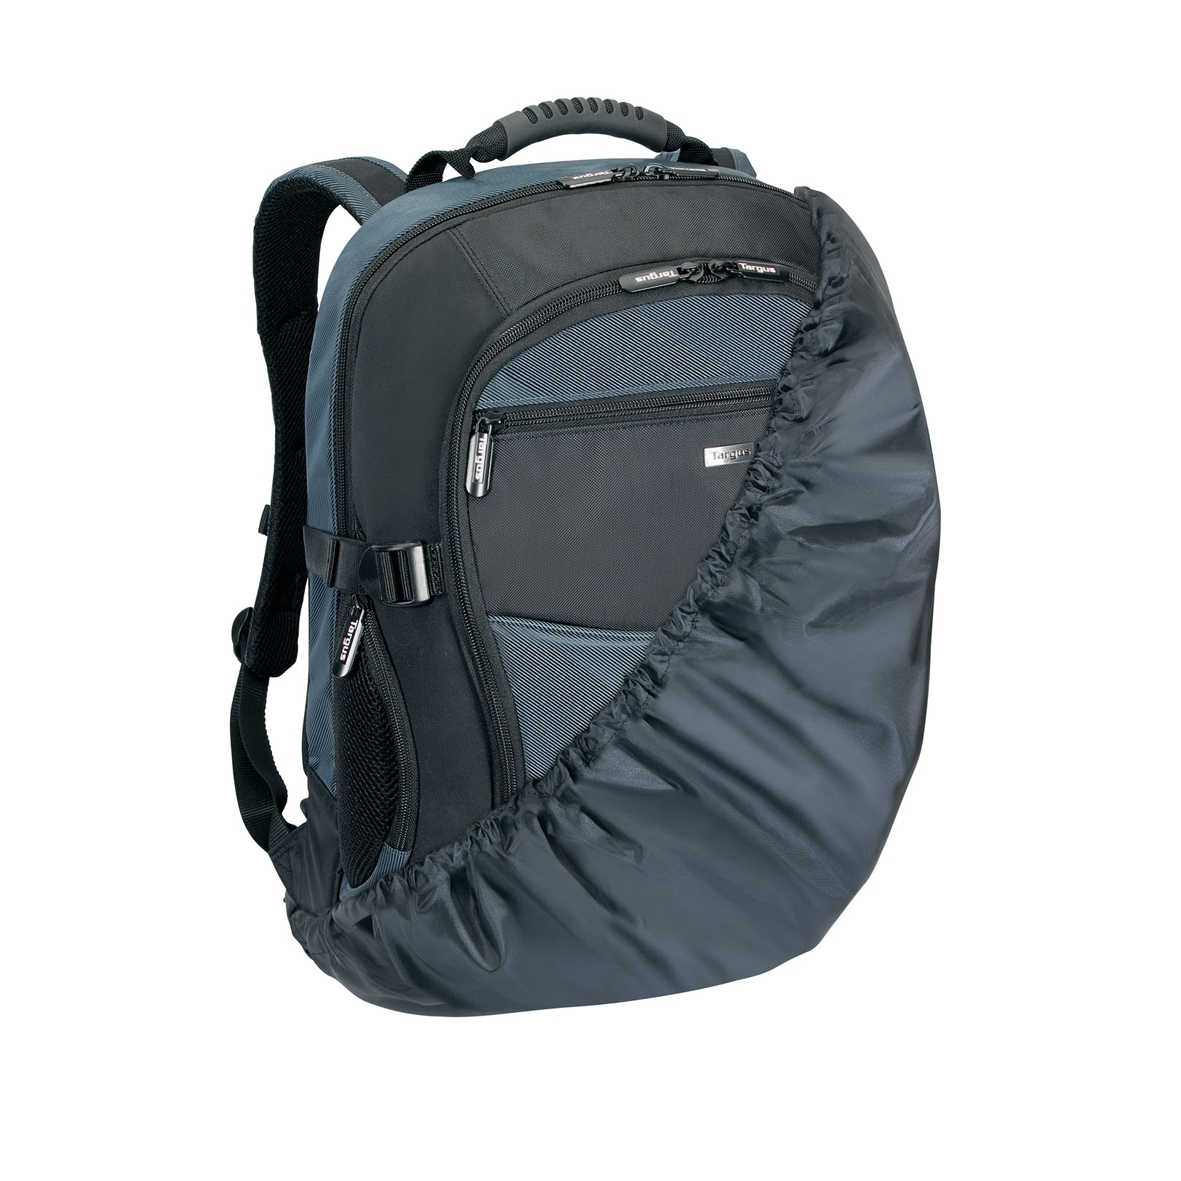 0010972_atmosphere-17-18-xl-laptop-backpack-blackblue